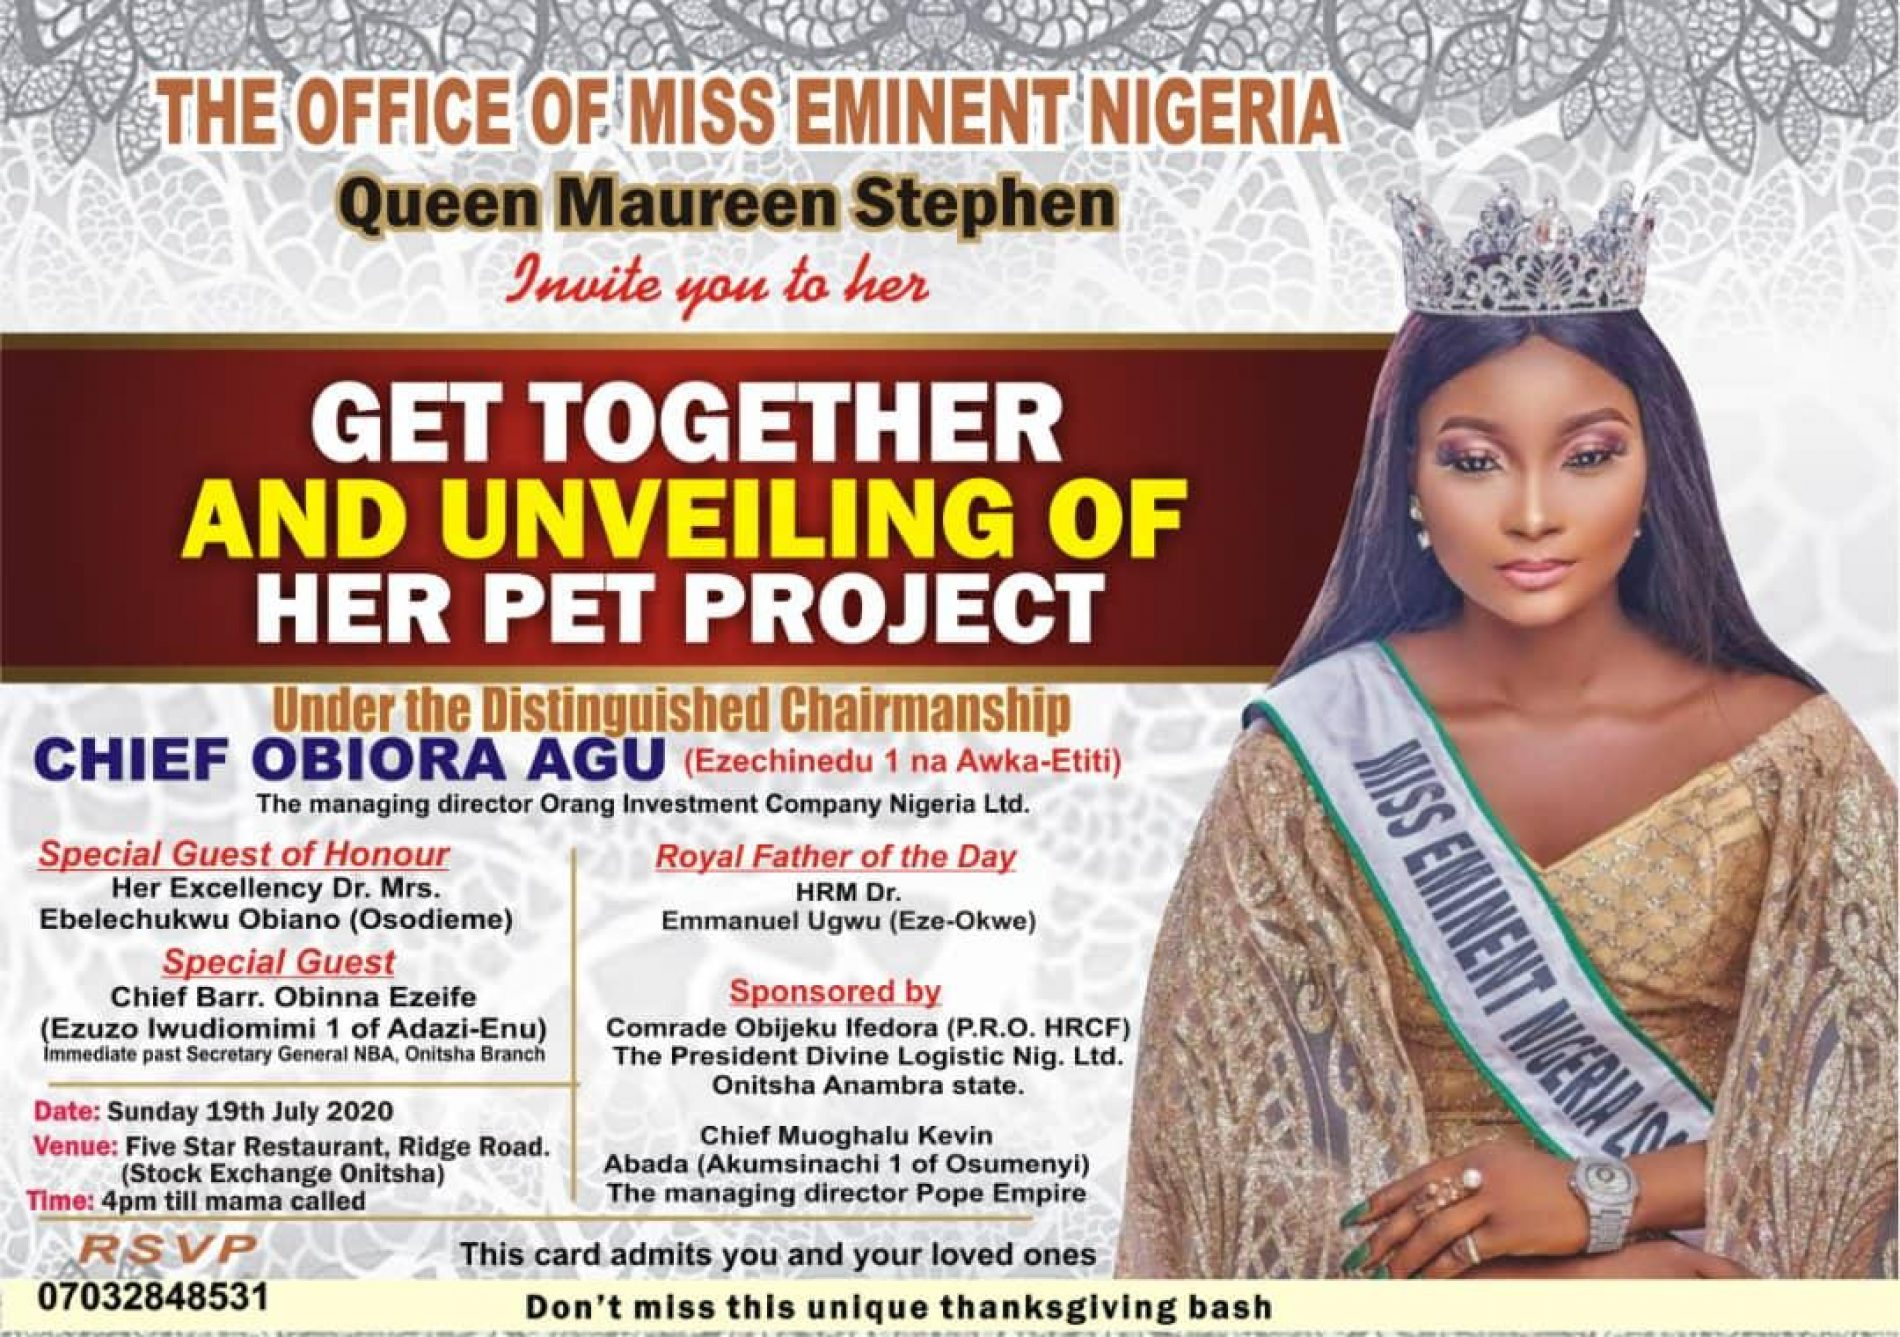 Obiano, Obiora, Ezeife, Notable Others To Attend Queen Maureen Stephen's Pet Project Unveiling Ceremony